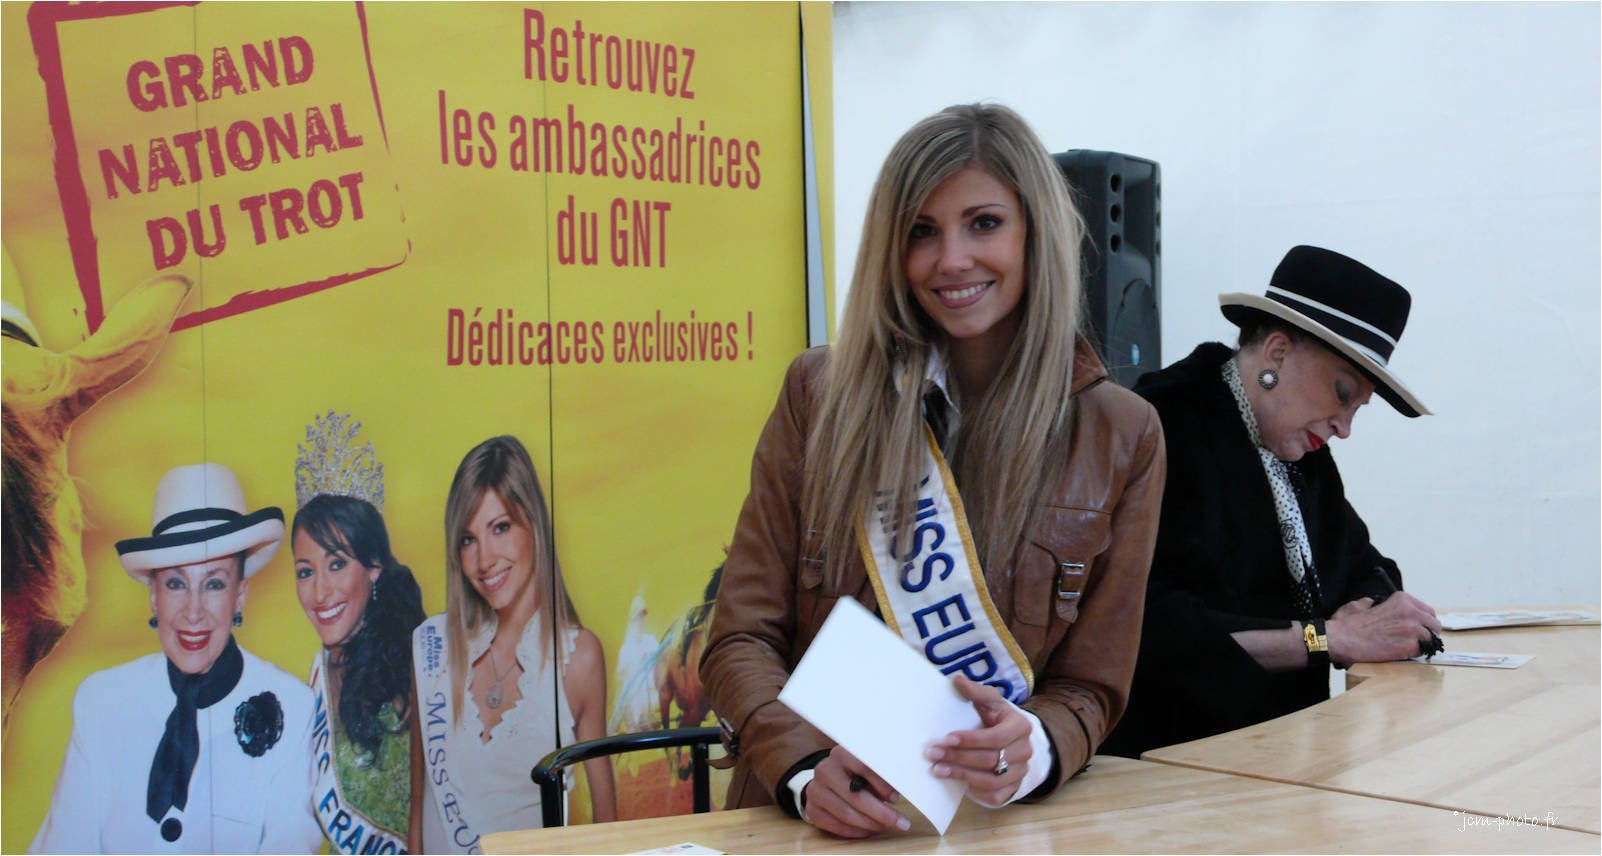 Grand National du Trot 2007 - Miss France - JeanClaudeM jcm-photo